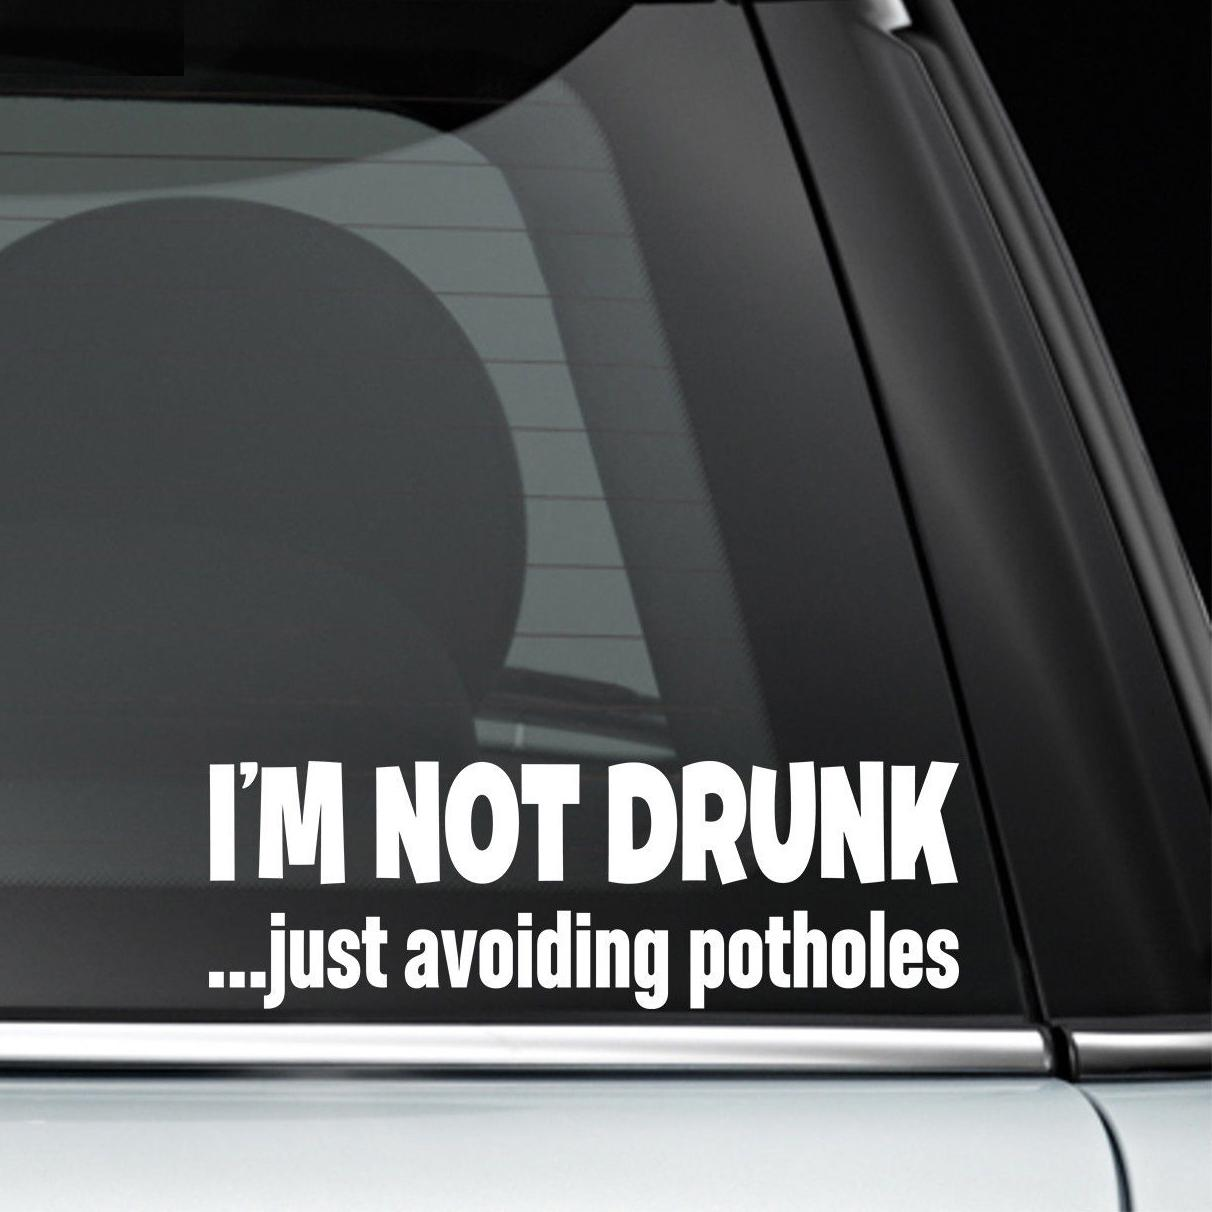 227 3cm im not drunk just avoiding potholes funny car window decal bumper novelty jdm drift vinyl decal stickers